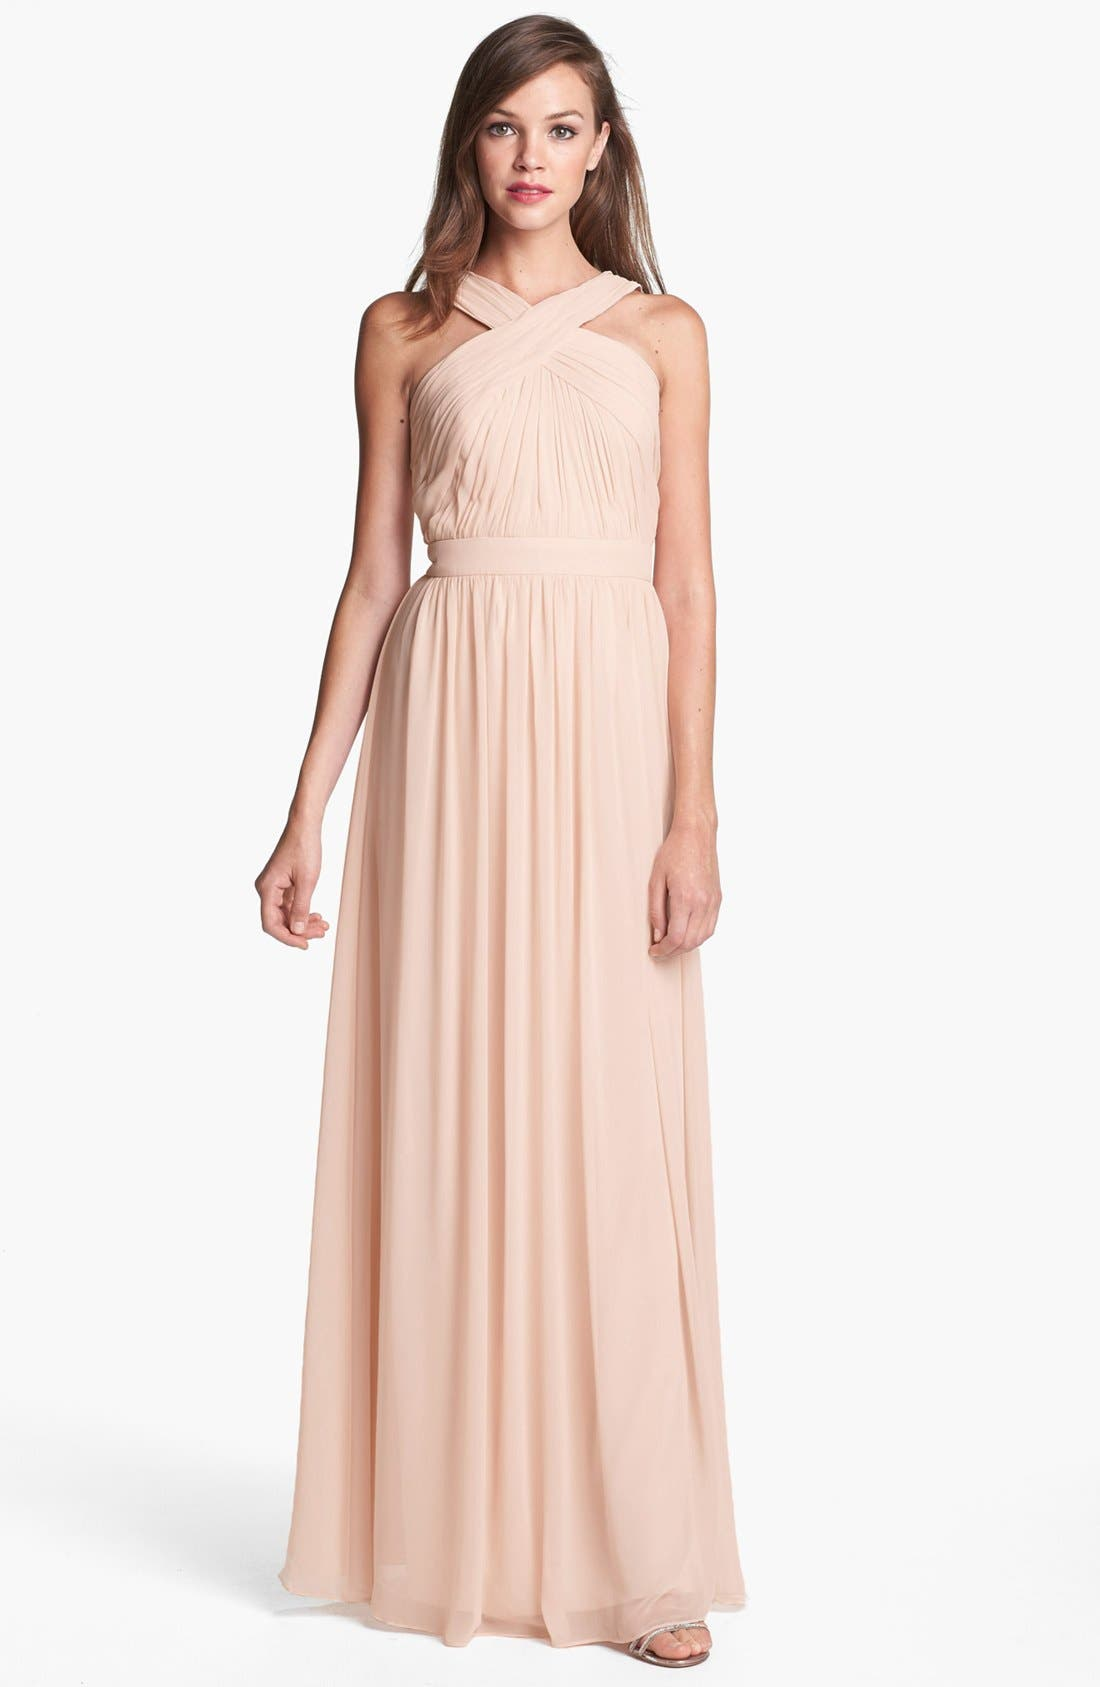 Alternate Image 1 Selected - Monique Lhuillier Bridesmaids Crisscross Chiffon Gown (Nordstrom Exclusive)